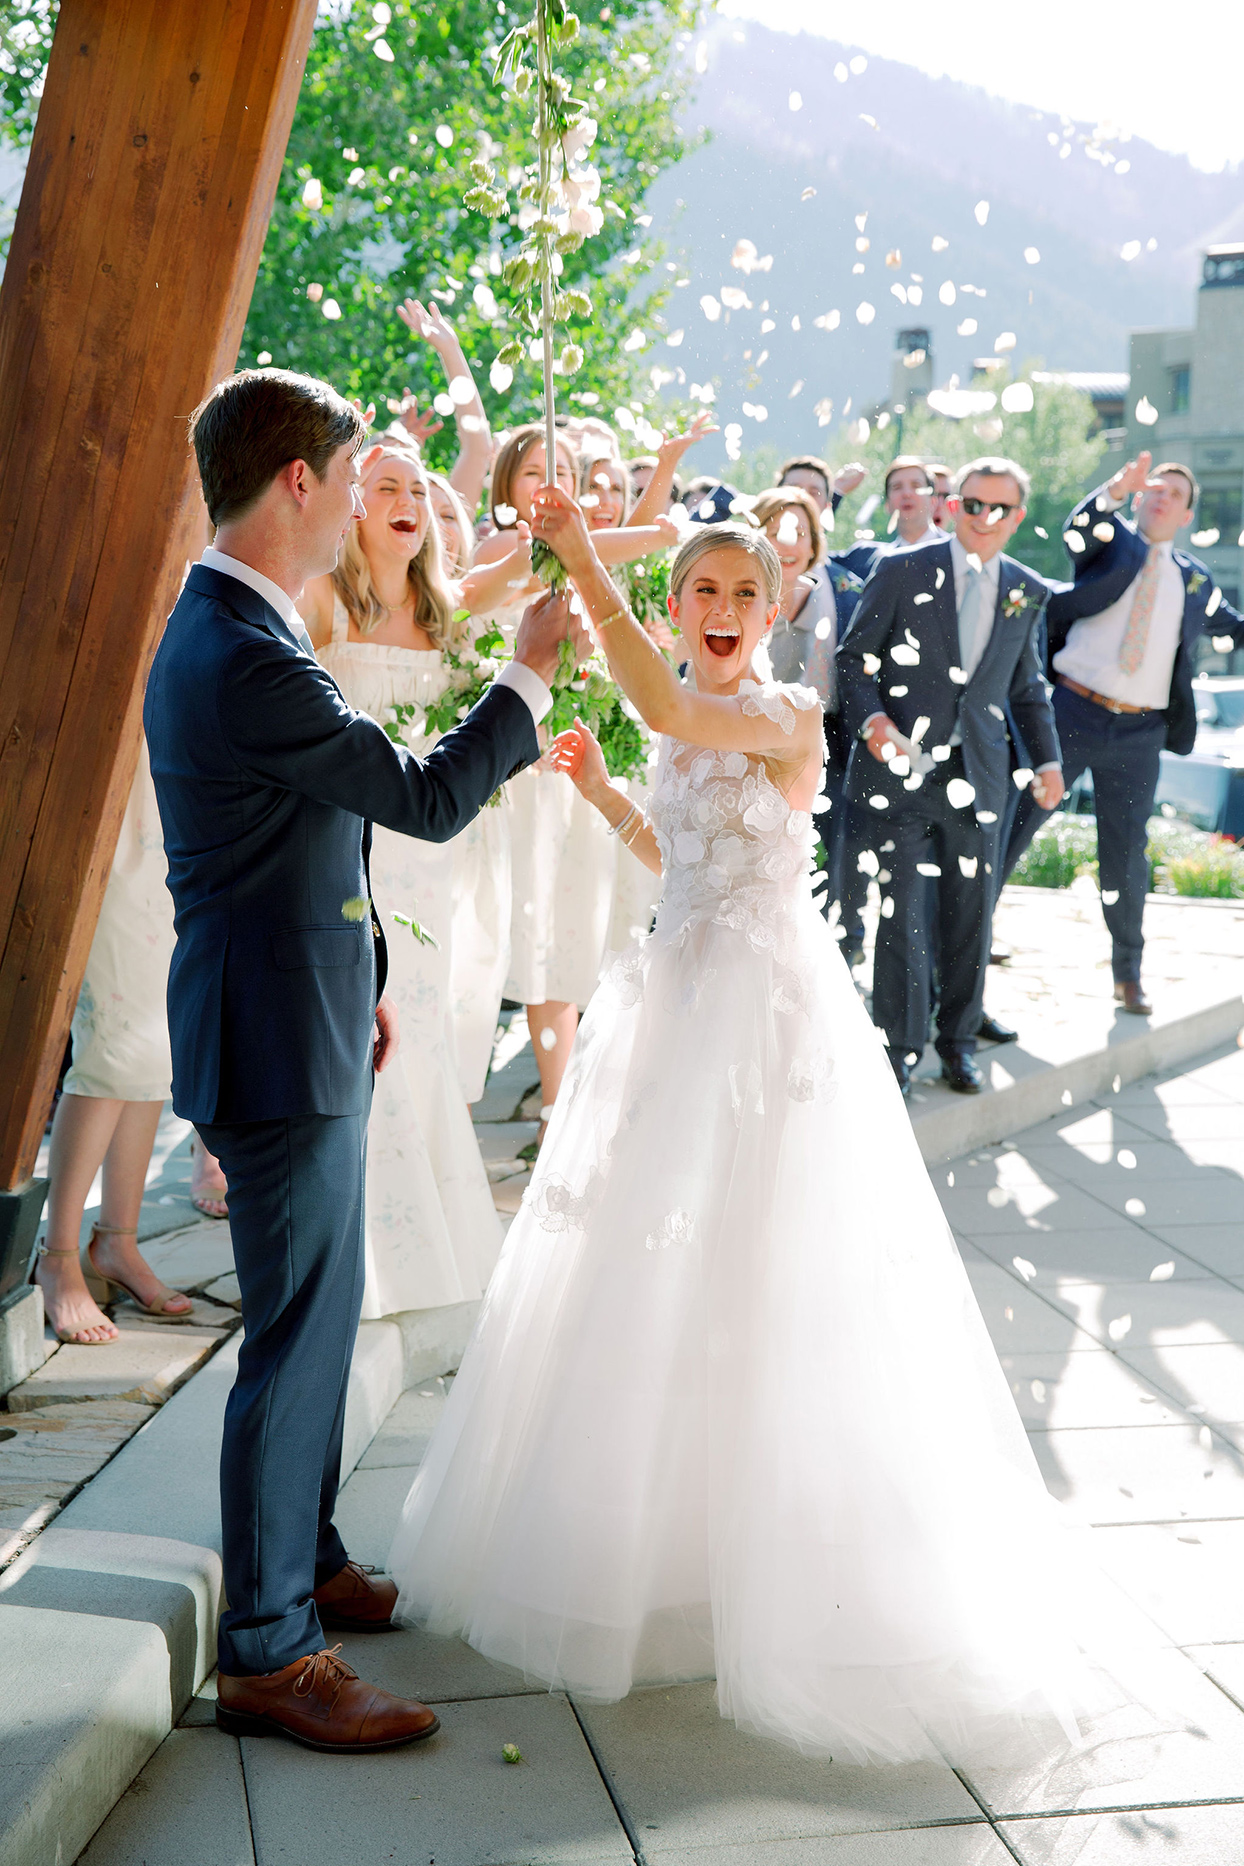 couple ringing bell after ceremony while being showered in flower petals